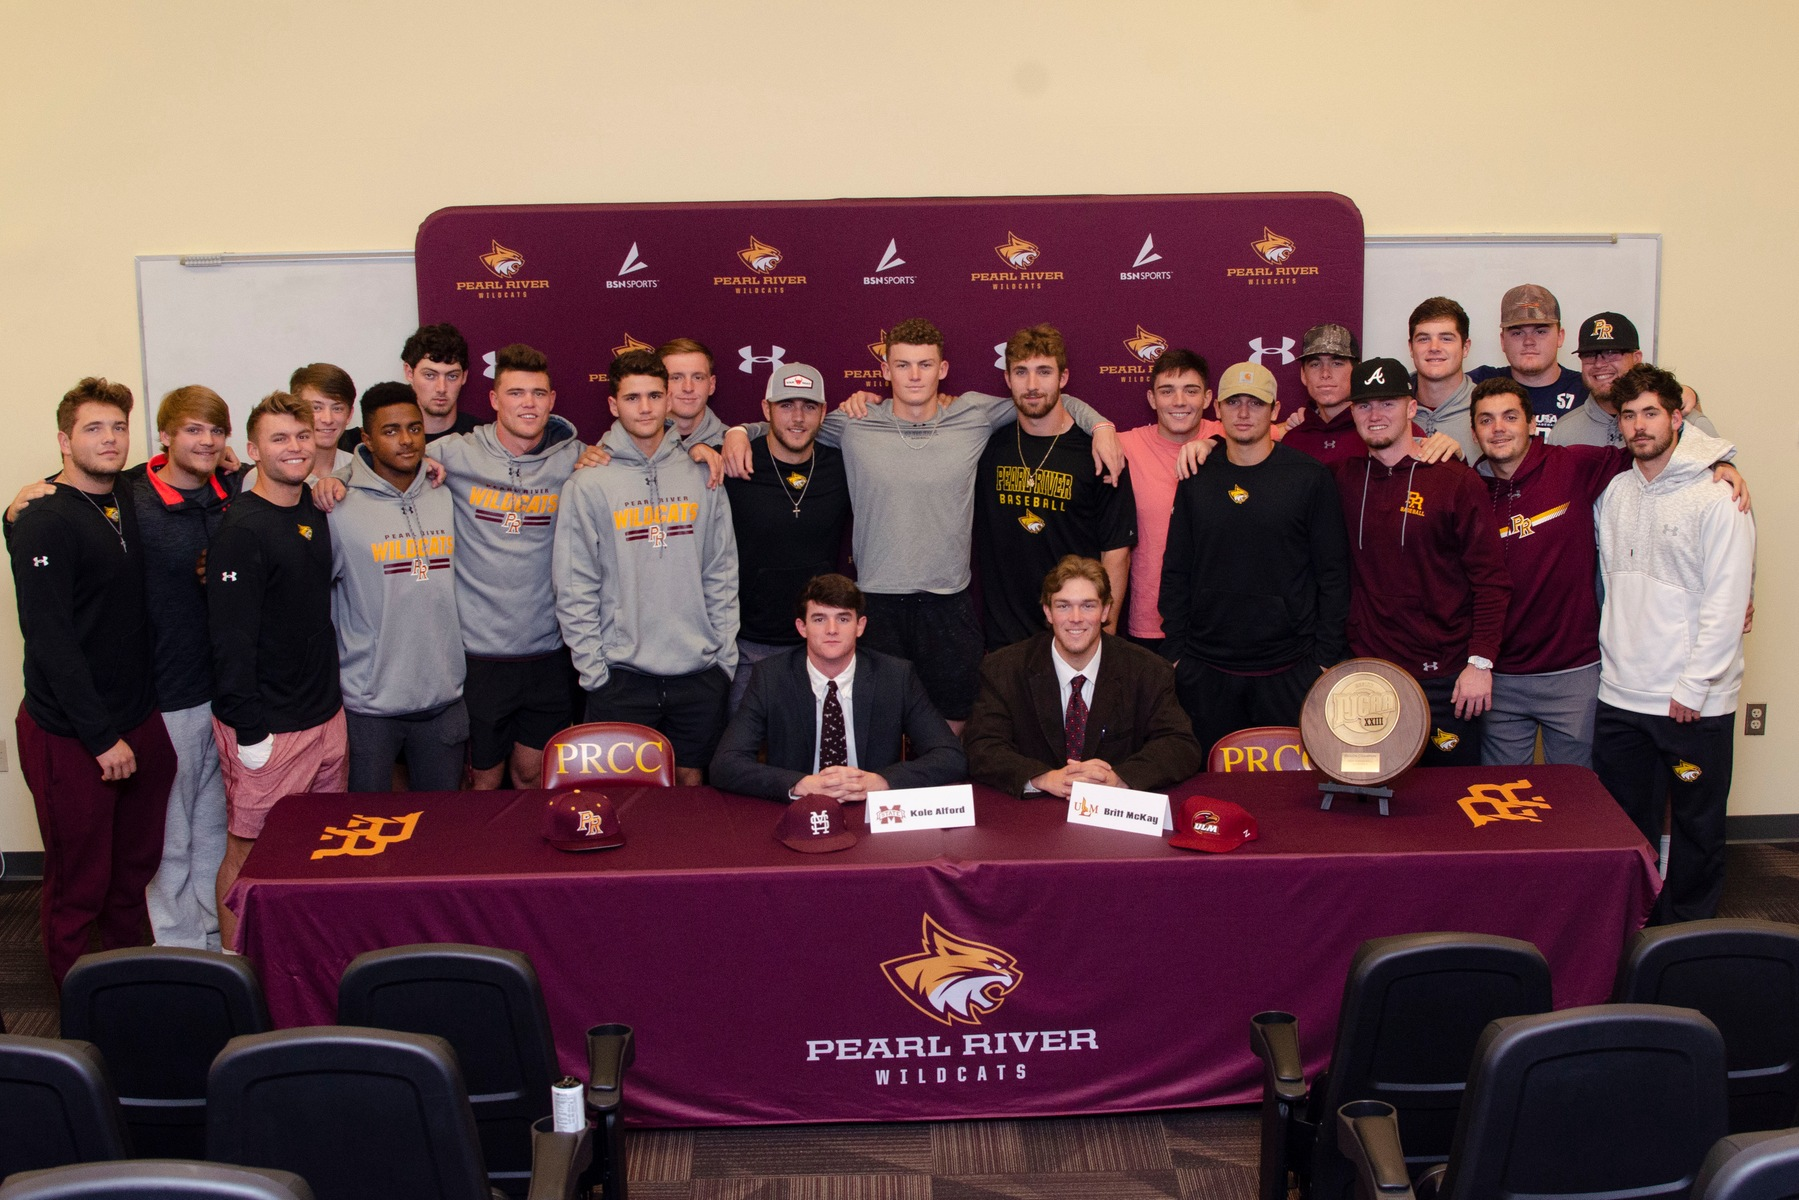 The Pearl River baseball program had two more Wildcats sign at the next level on Thursday, Nov. 21, 2019 inside the team meeting room at the football Fieldhouse. Kole Alford signed with Mississippi State and Britt McKay signed with Louisiana-Monroe. (KRISTI HARRIS/PRCC ATHLETICS)